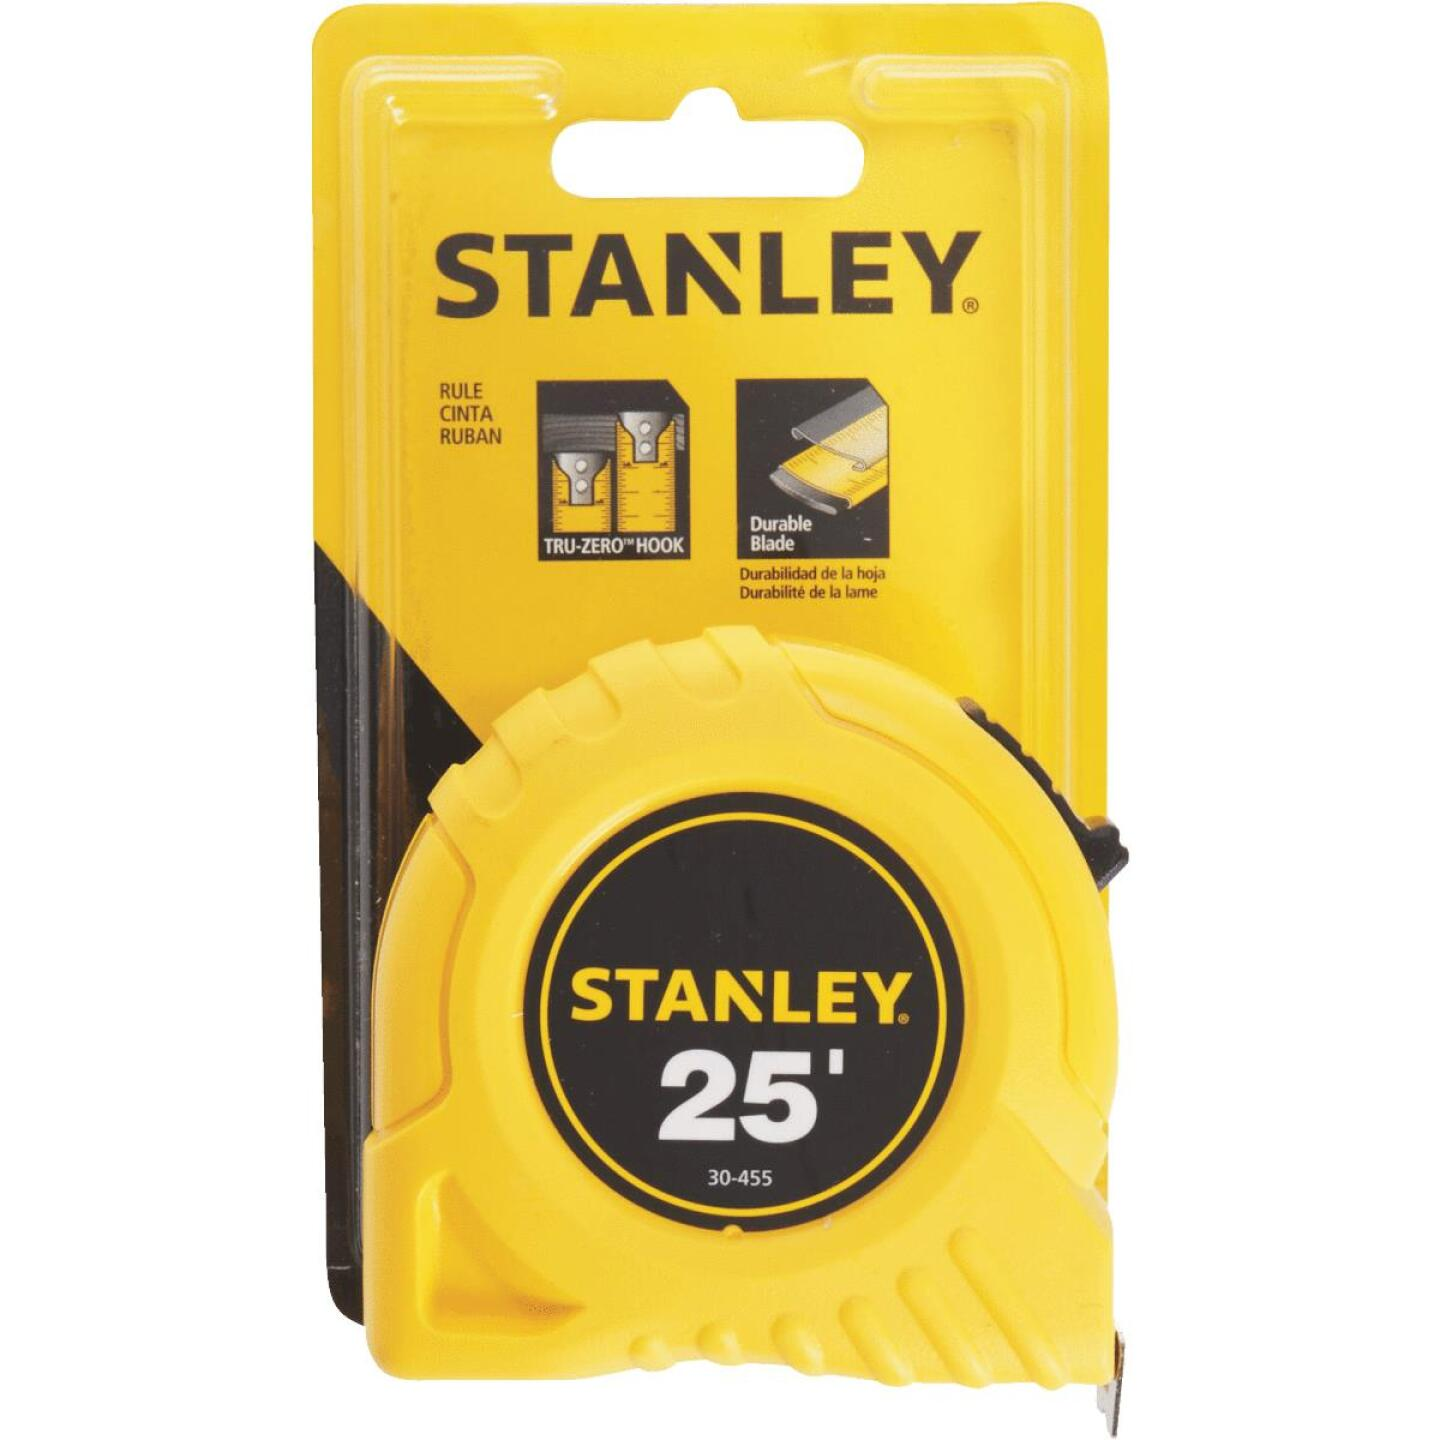 Stanley 25 Ft. Tape Measure Image 2